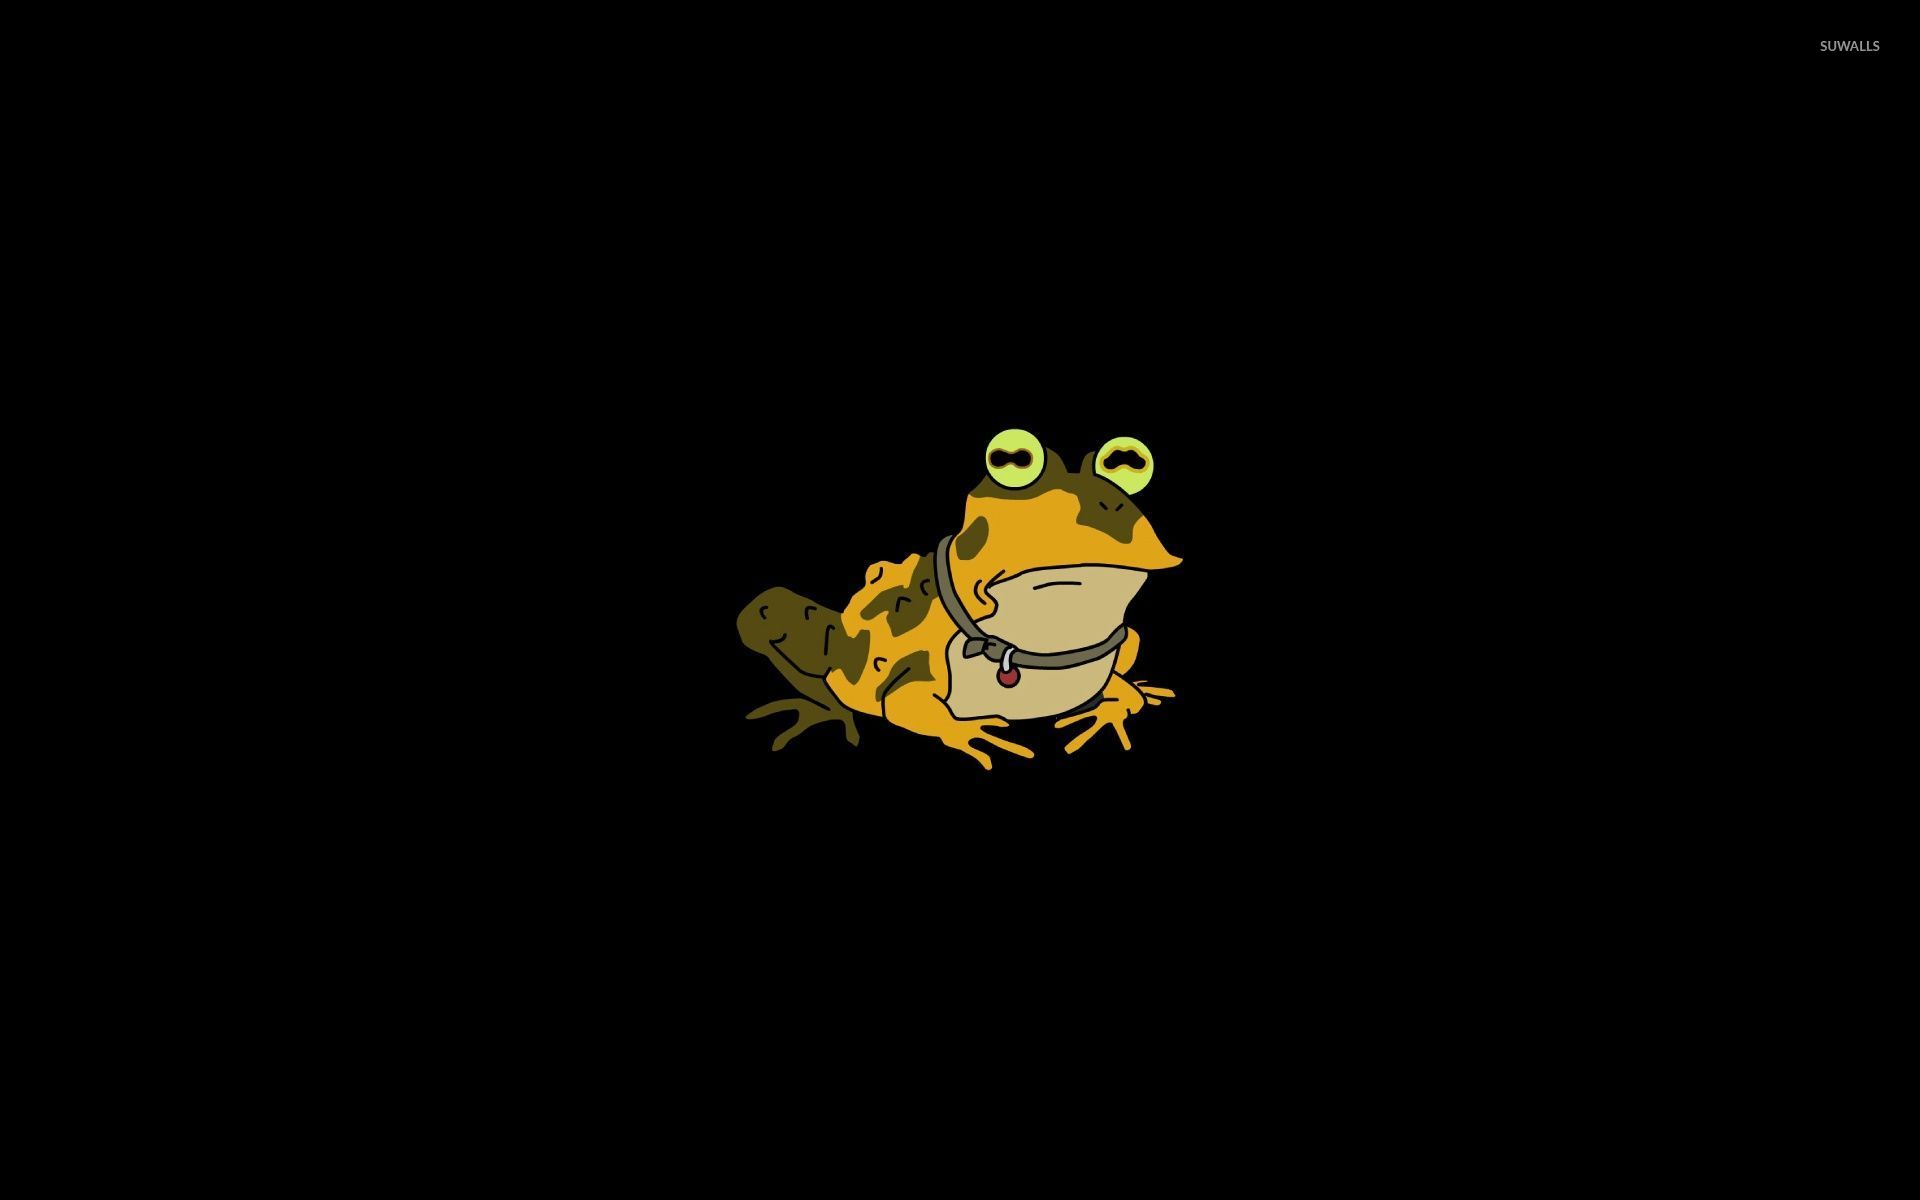 Hypnotoad - Futurama wallpaper